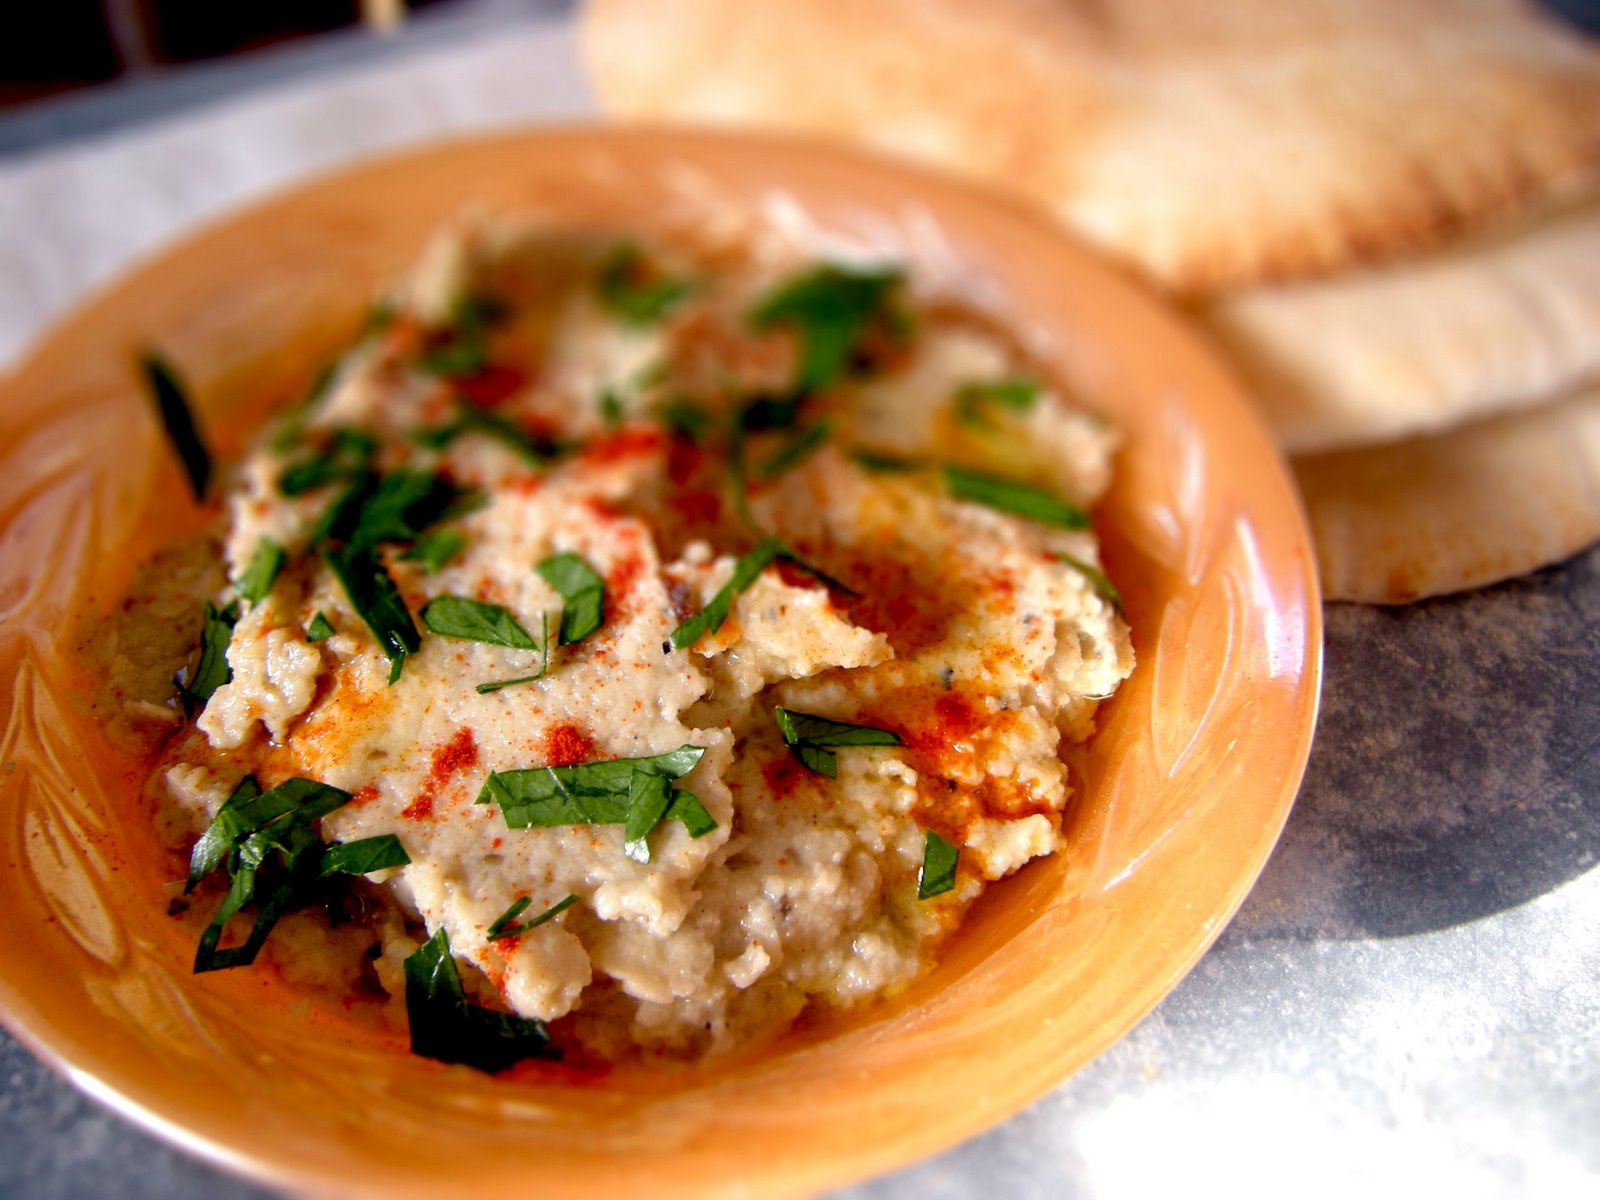 Crafty Lass: Smoky Baba Ghanoush